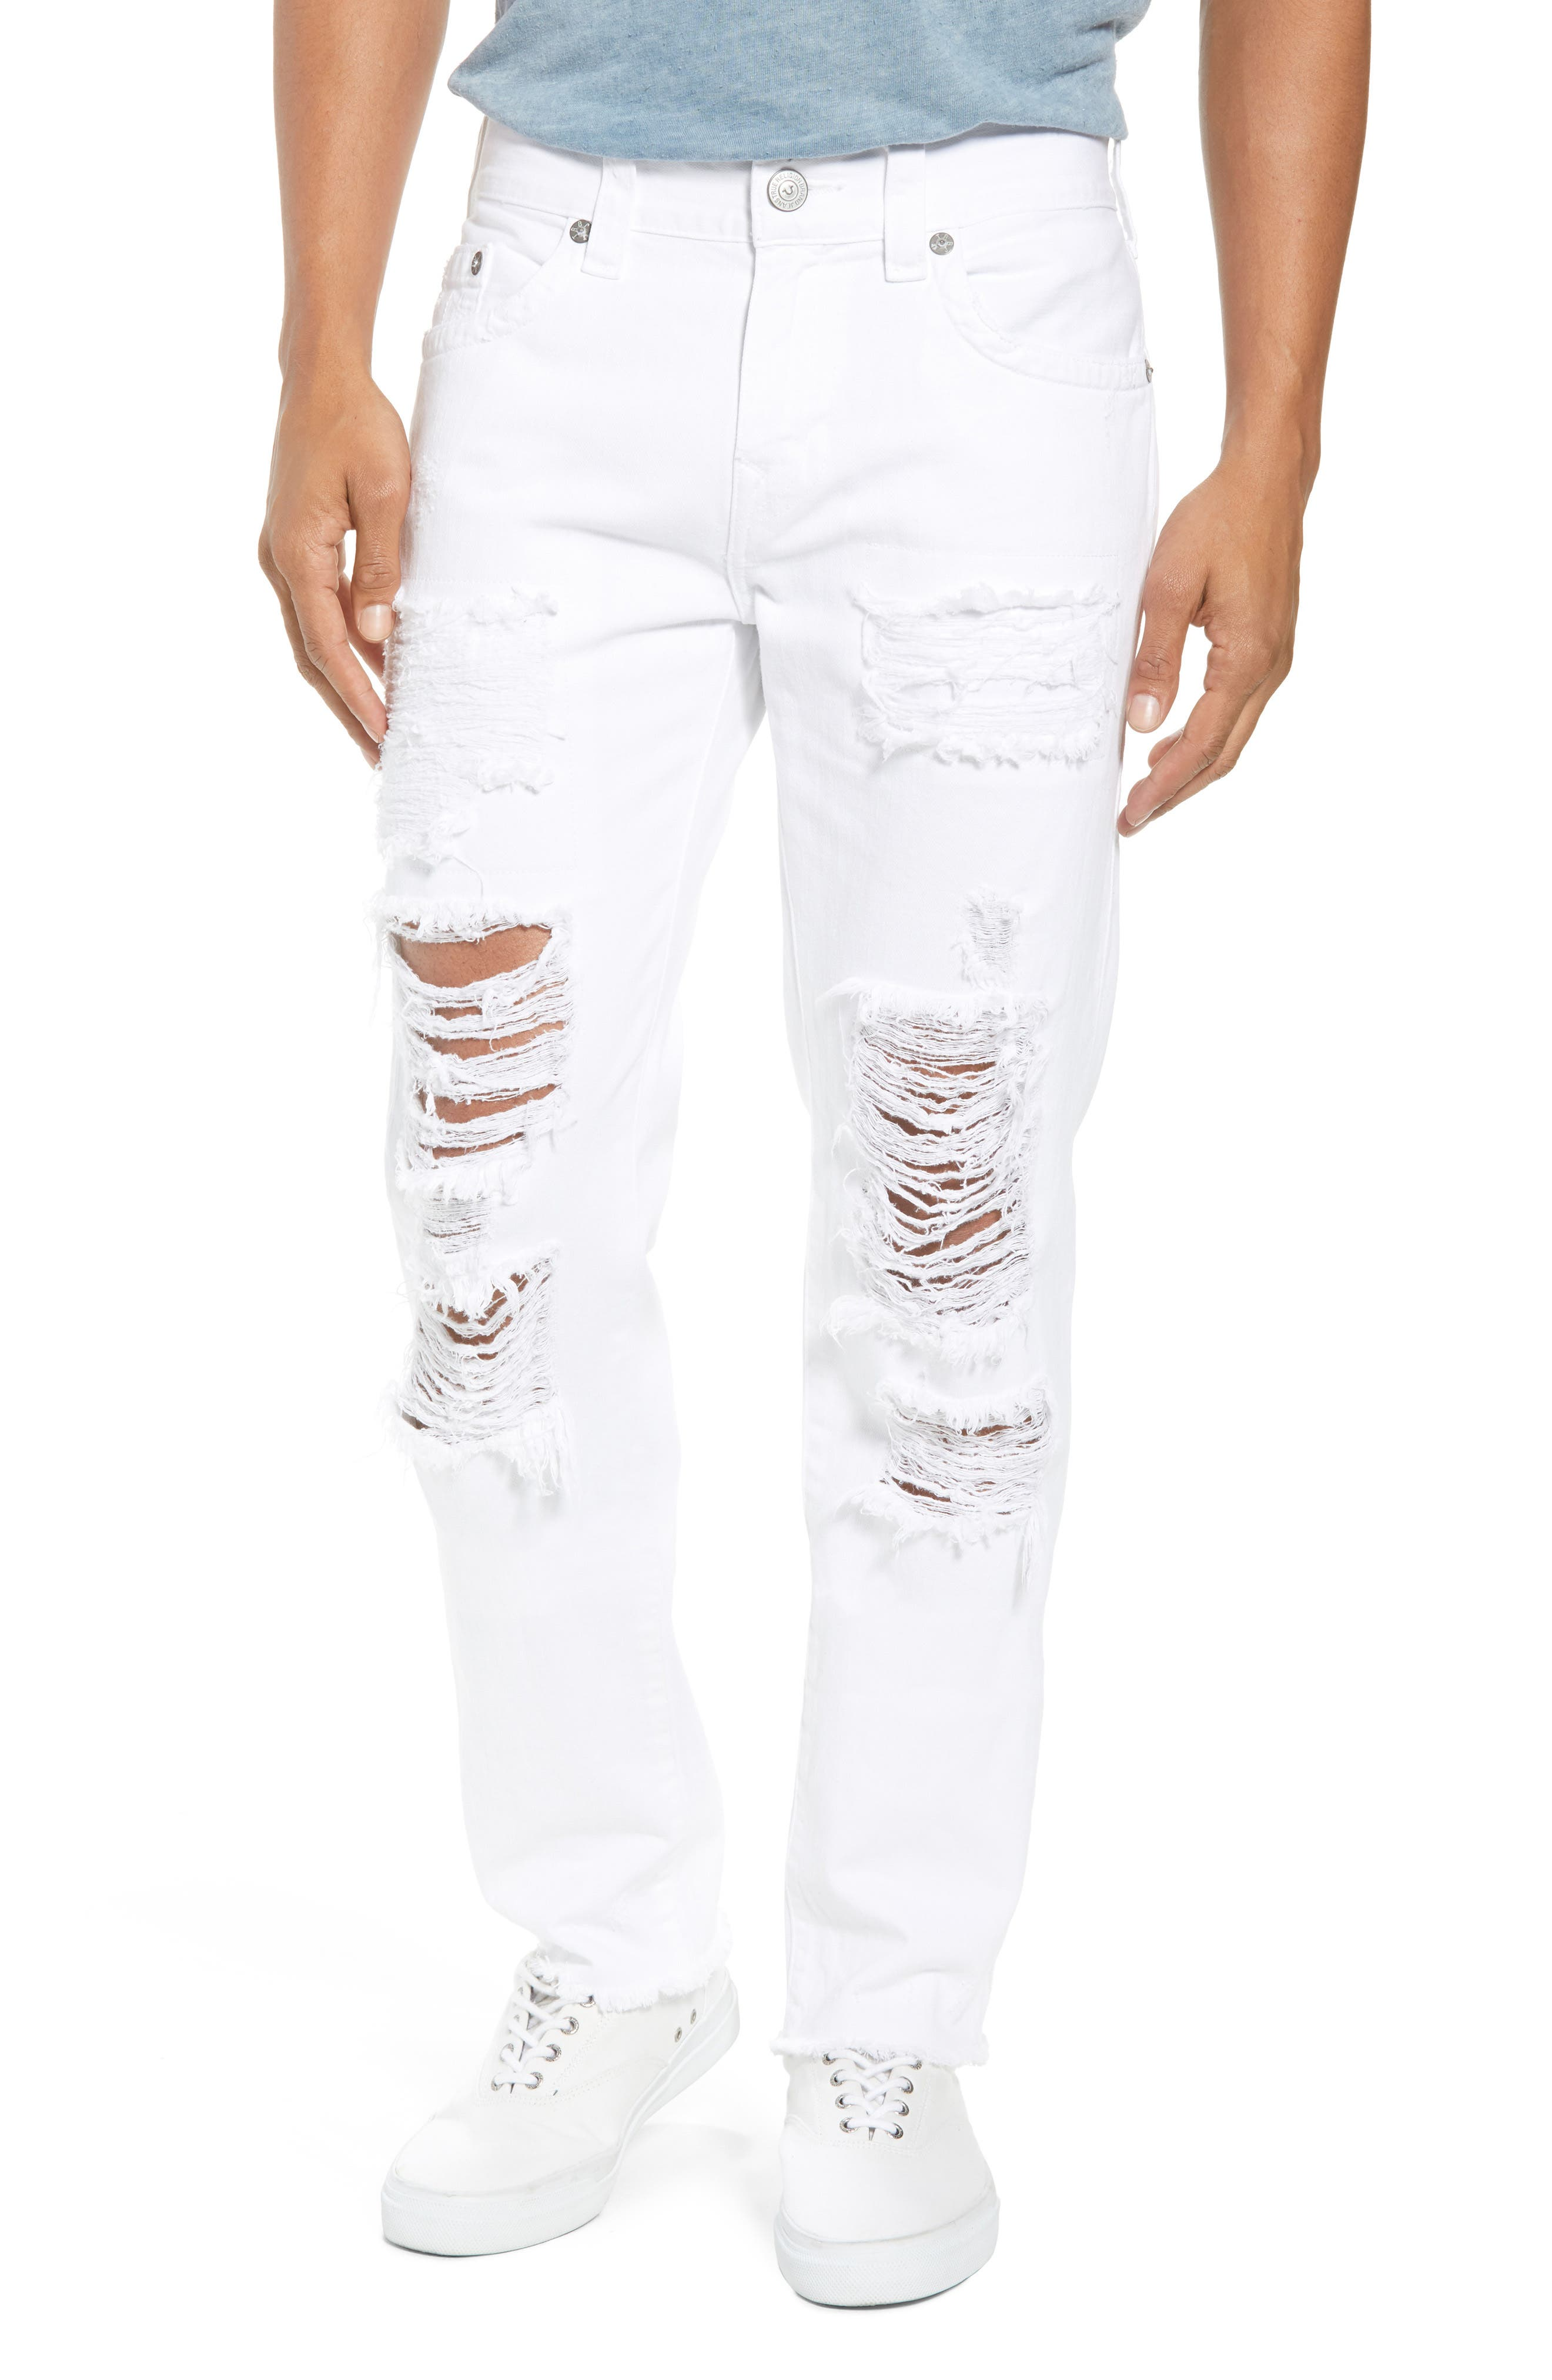 Rocco Skinny Fit jeans,                             Main thumbnail 1, color,                             White Volcanic Ash